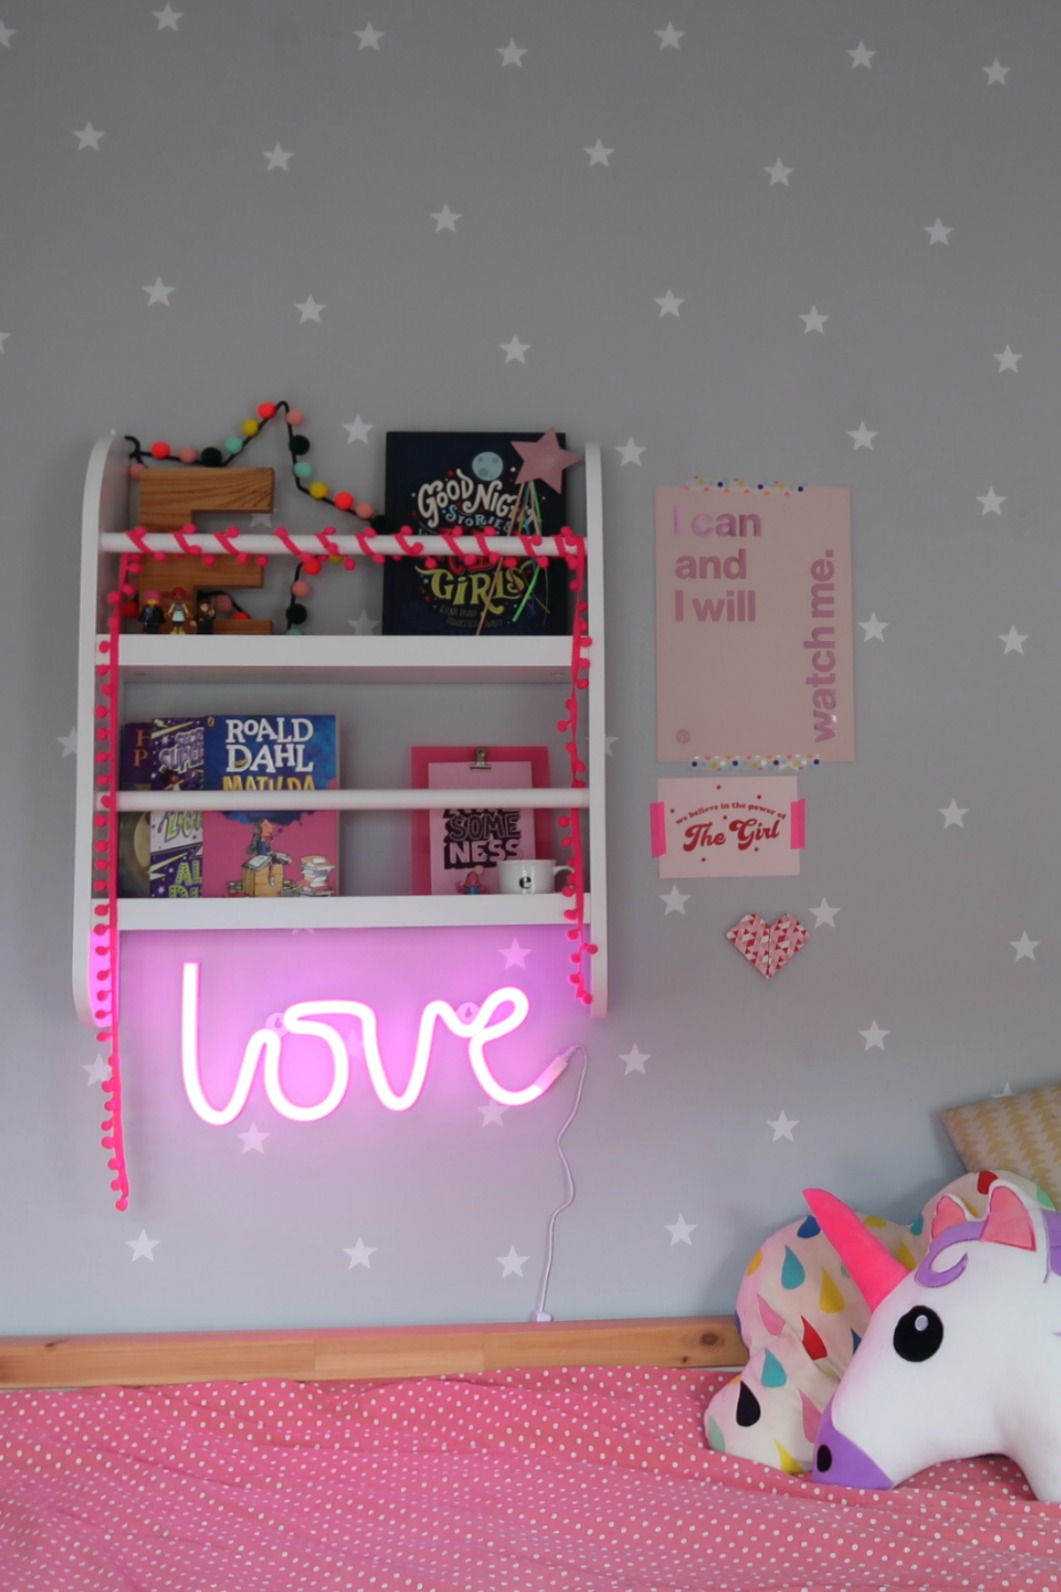 Star print wallpaper and Greenaway bookcase from GLTC - pink and grey children's rooms